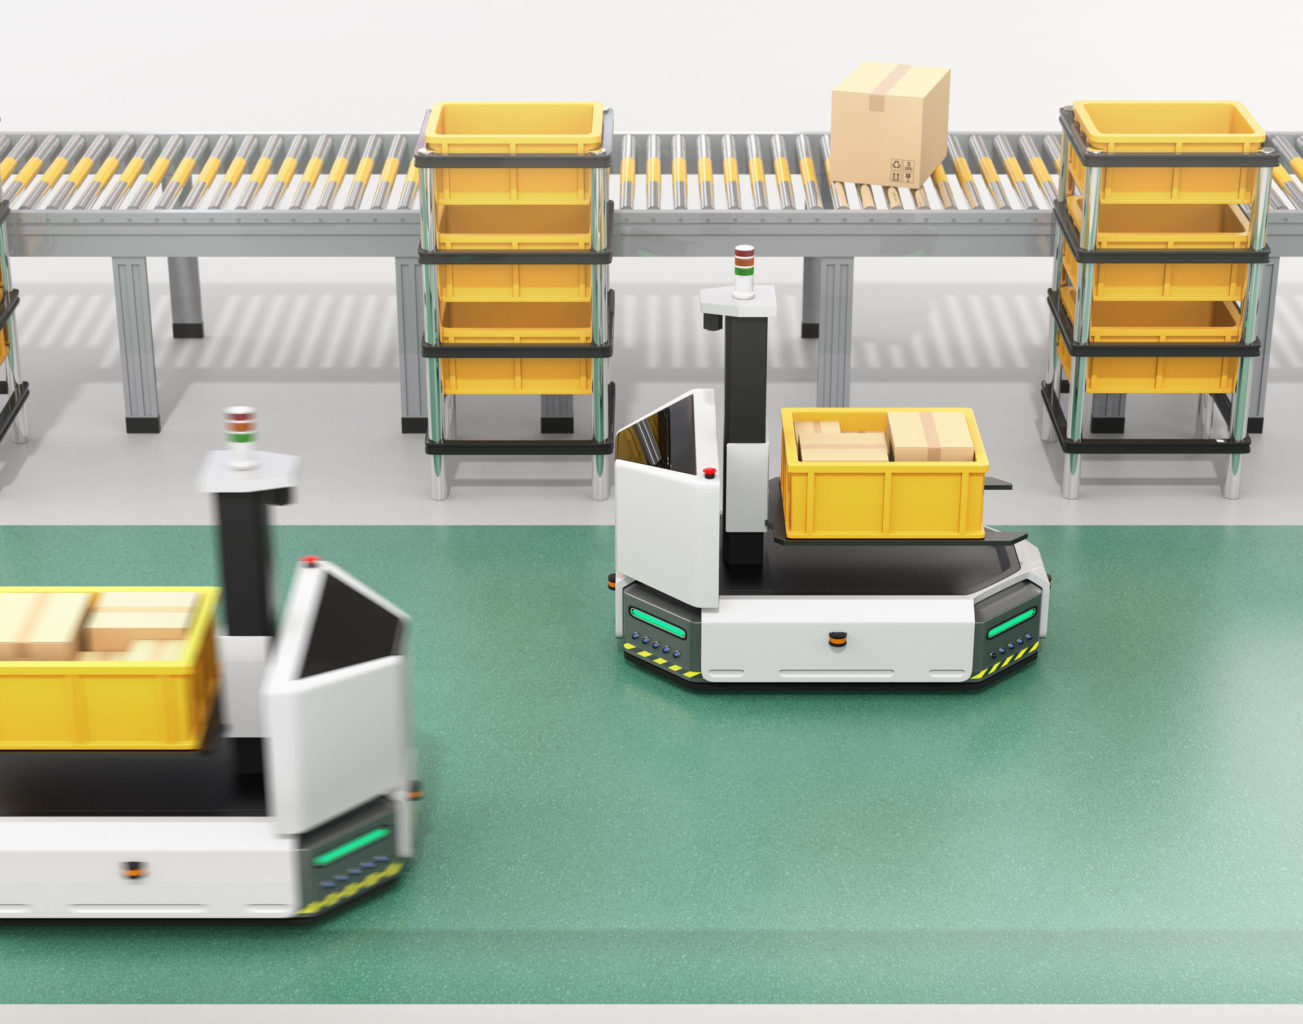 Terabee Blog Making Mobile Robots Smarter and Safer